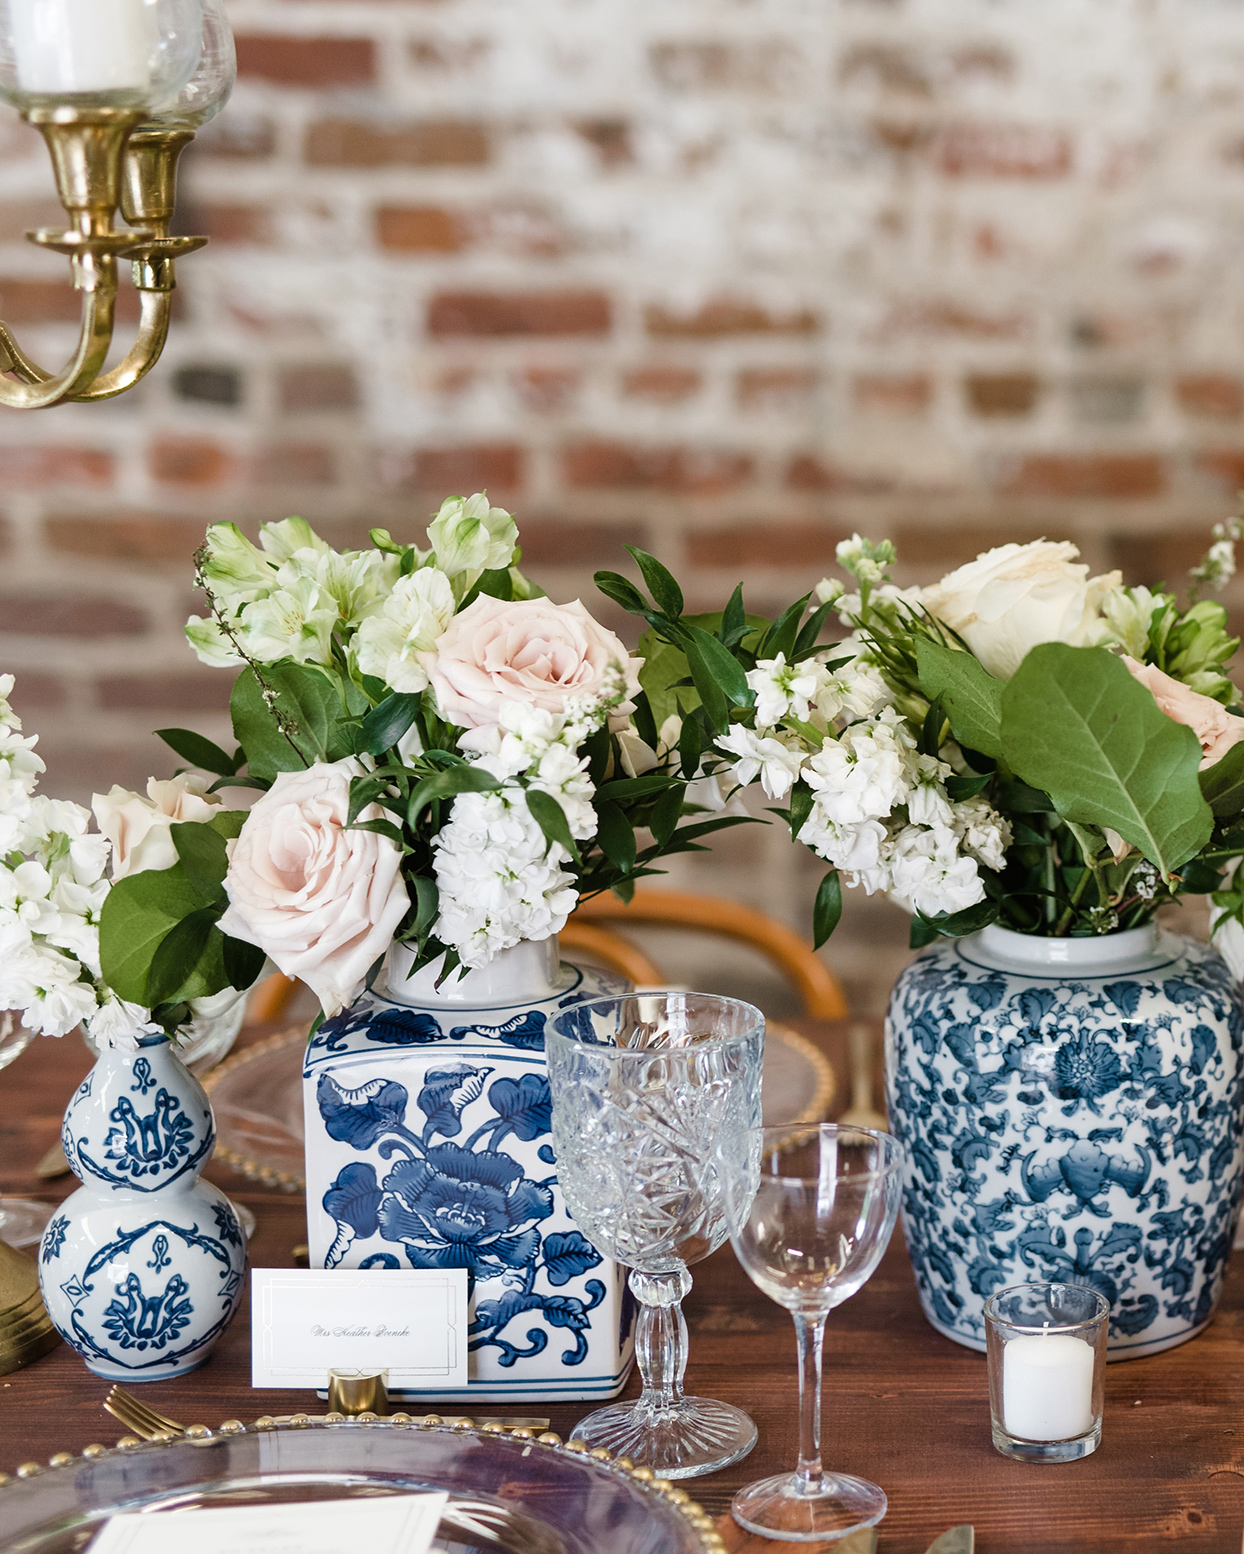 blue-and-white chinoiserie vases with white and blush blooms